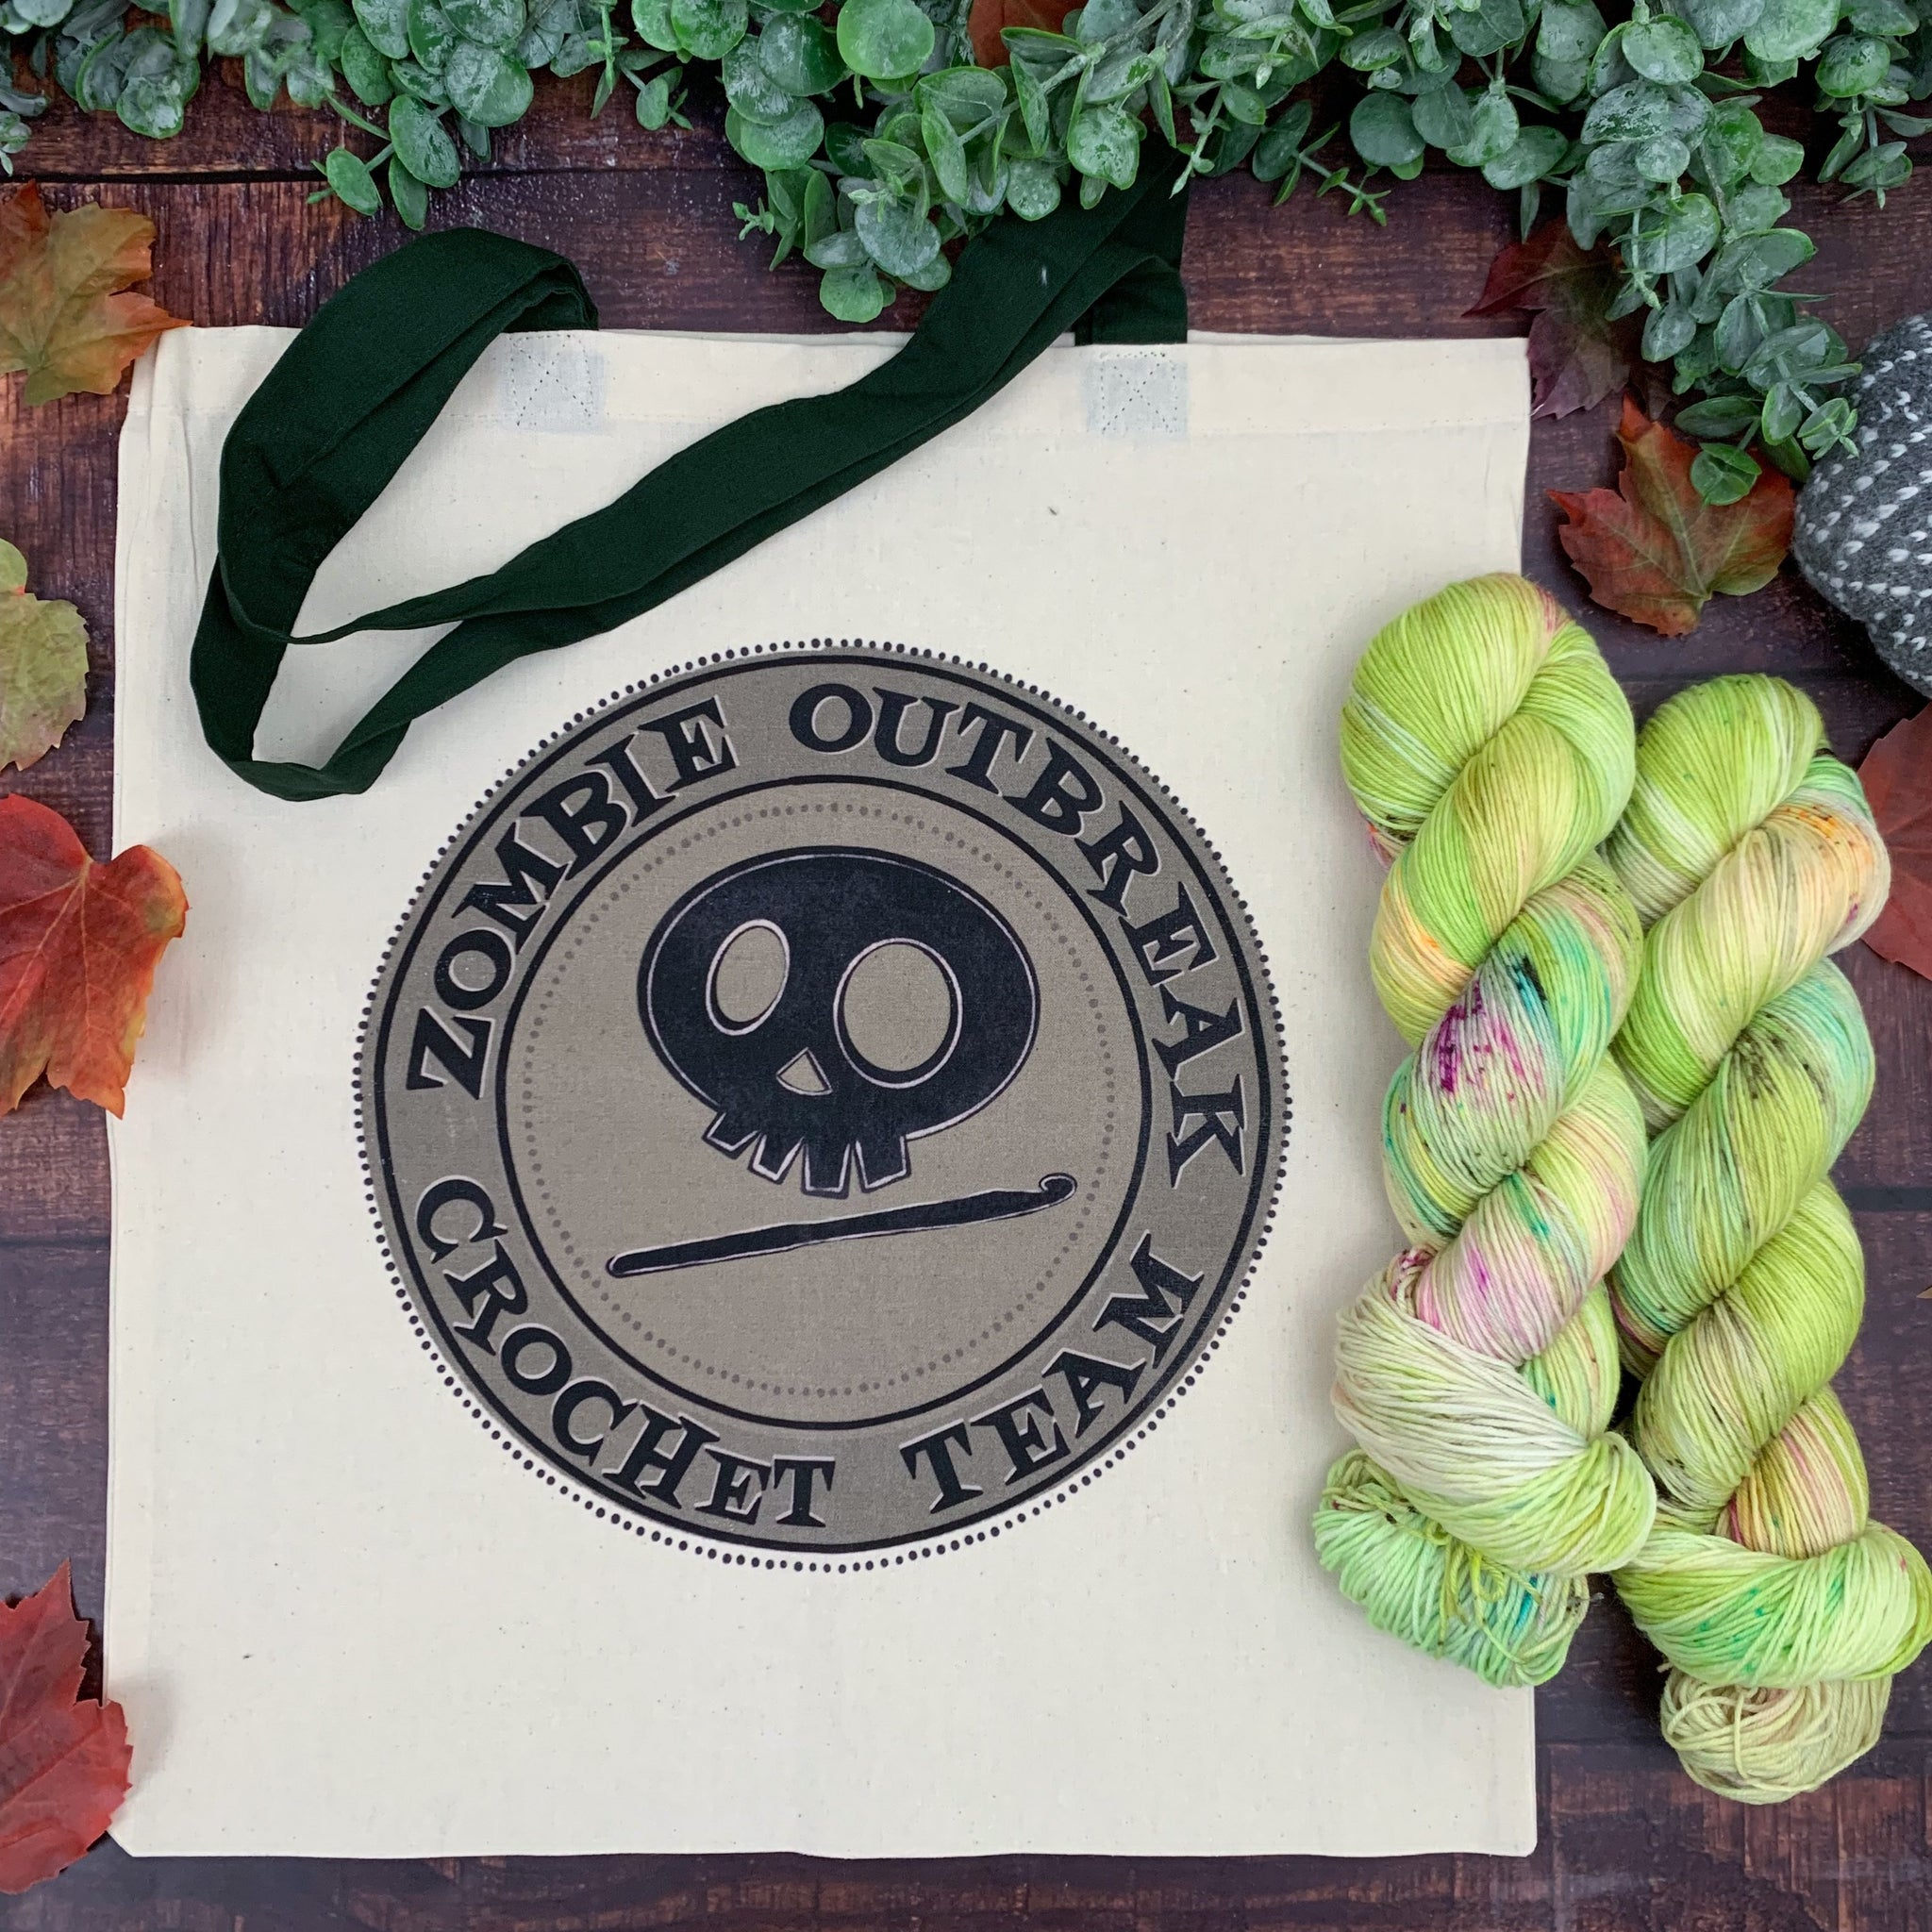 Zombie Outbreak Crochet Team- Vintage Tote Bag